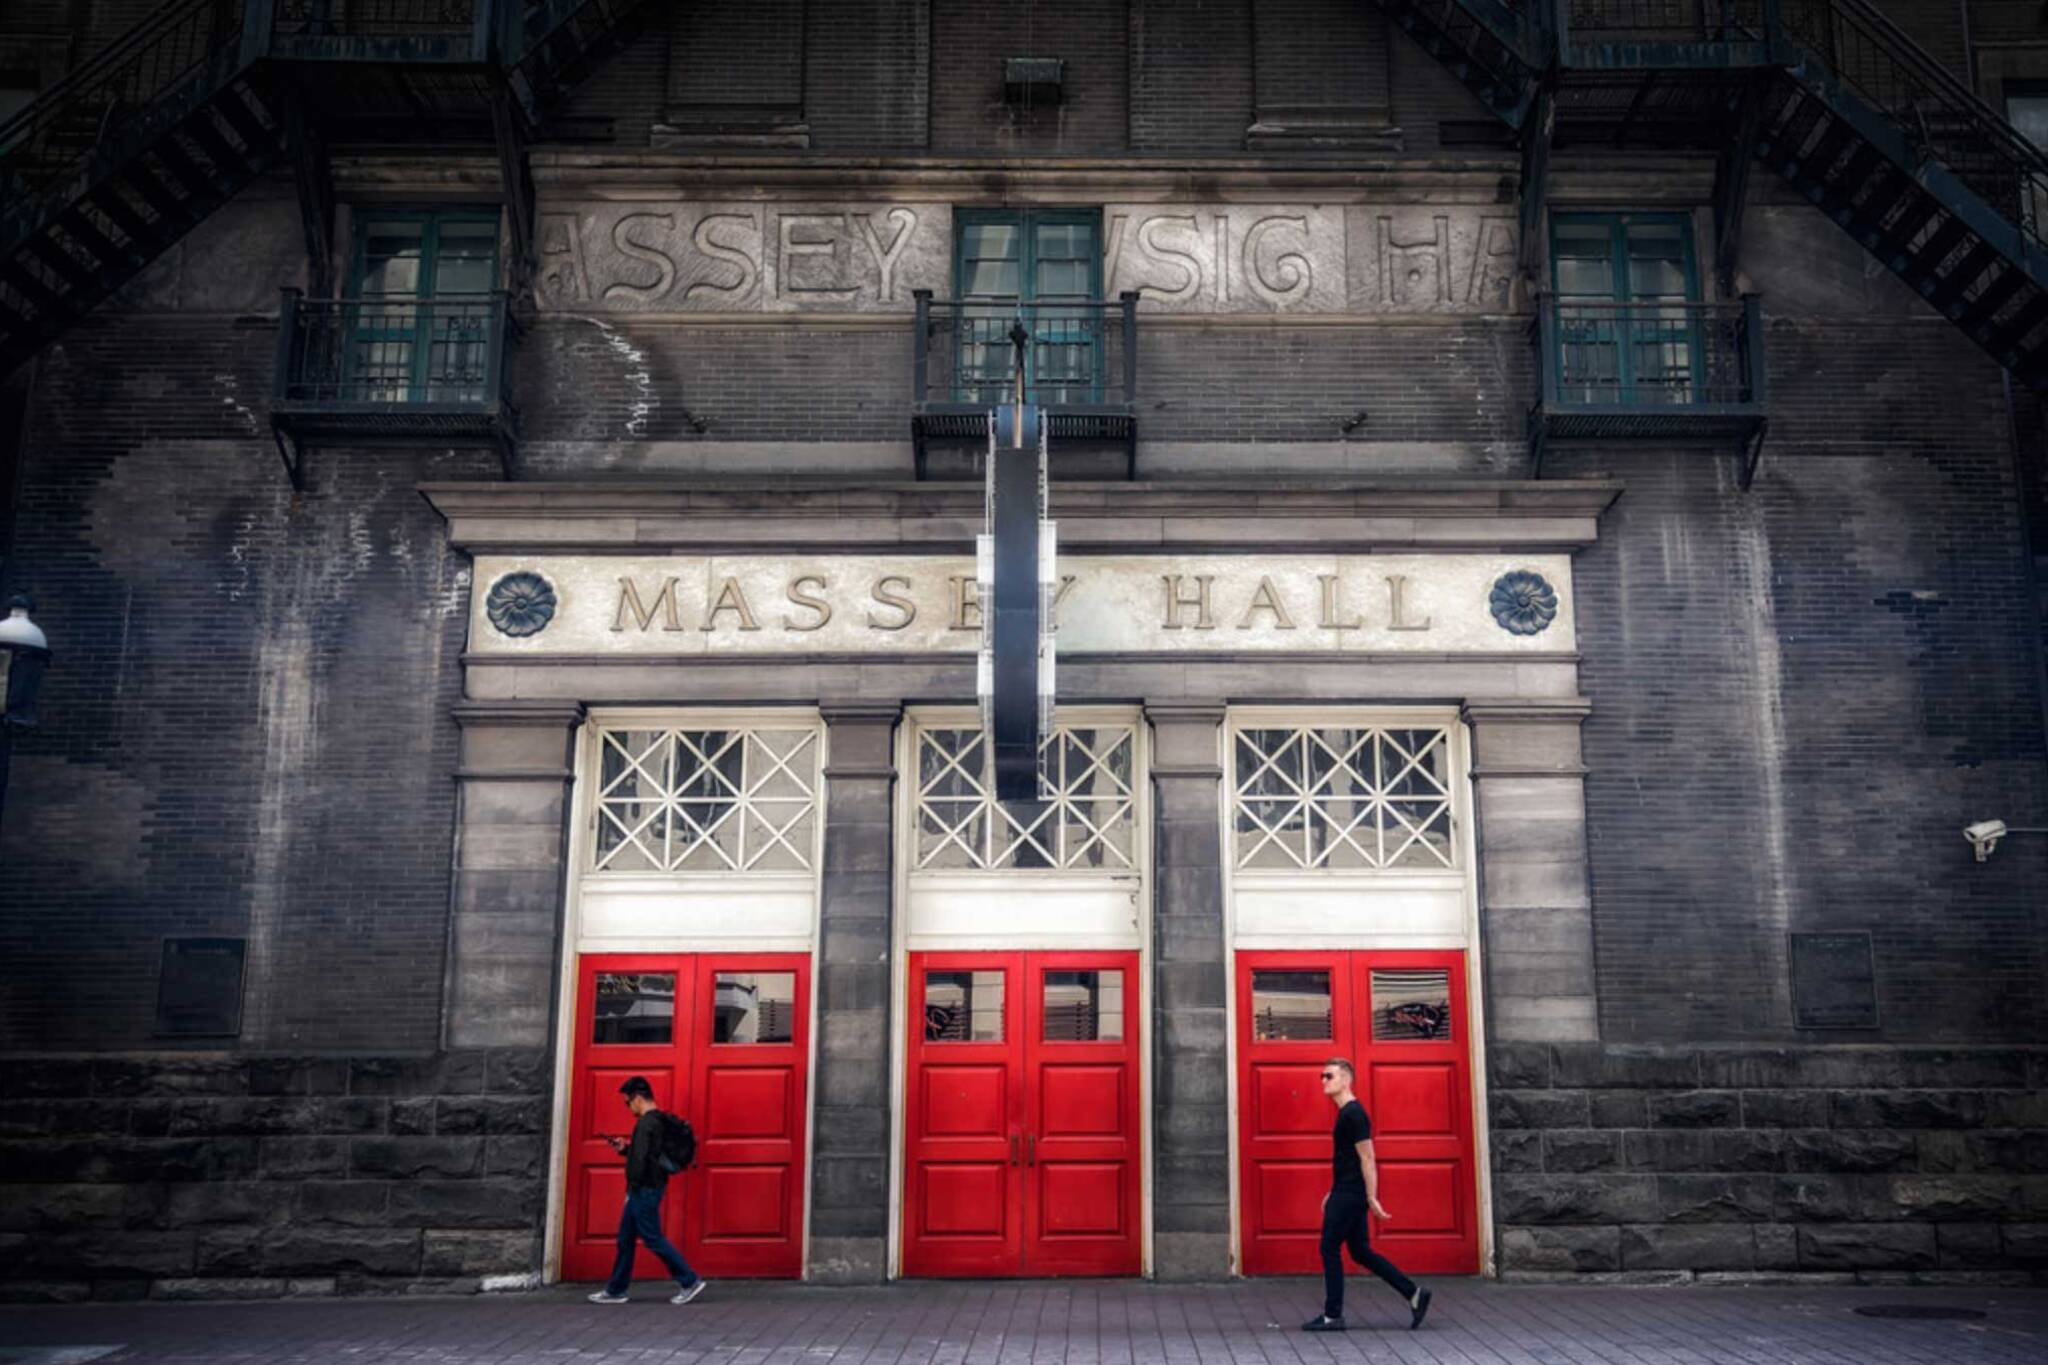 Massey hall closing